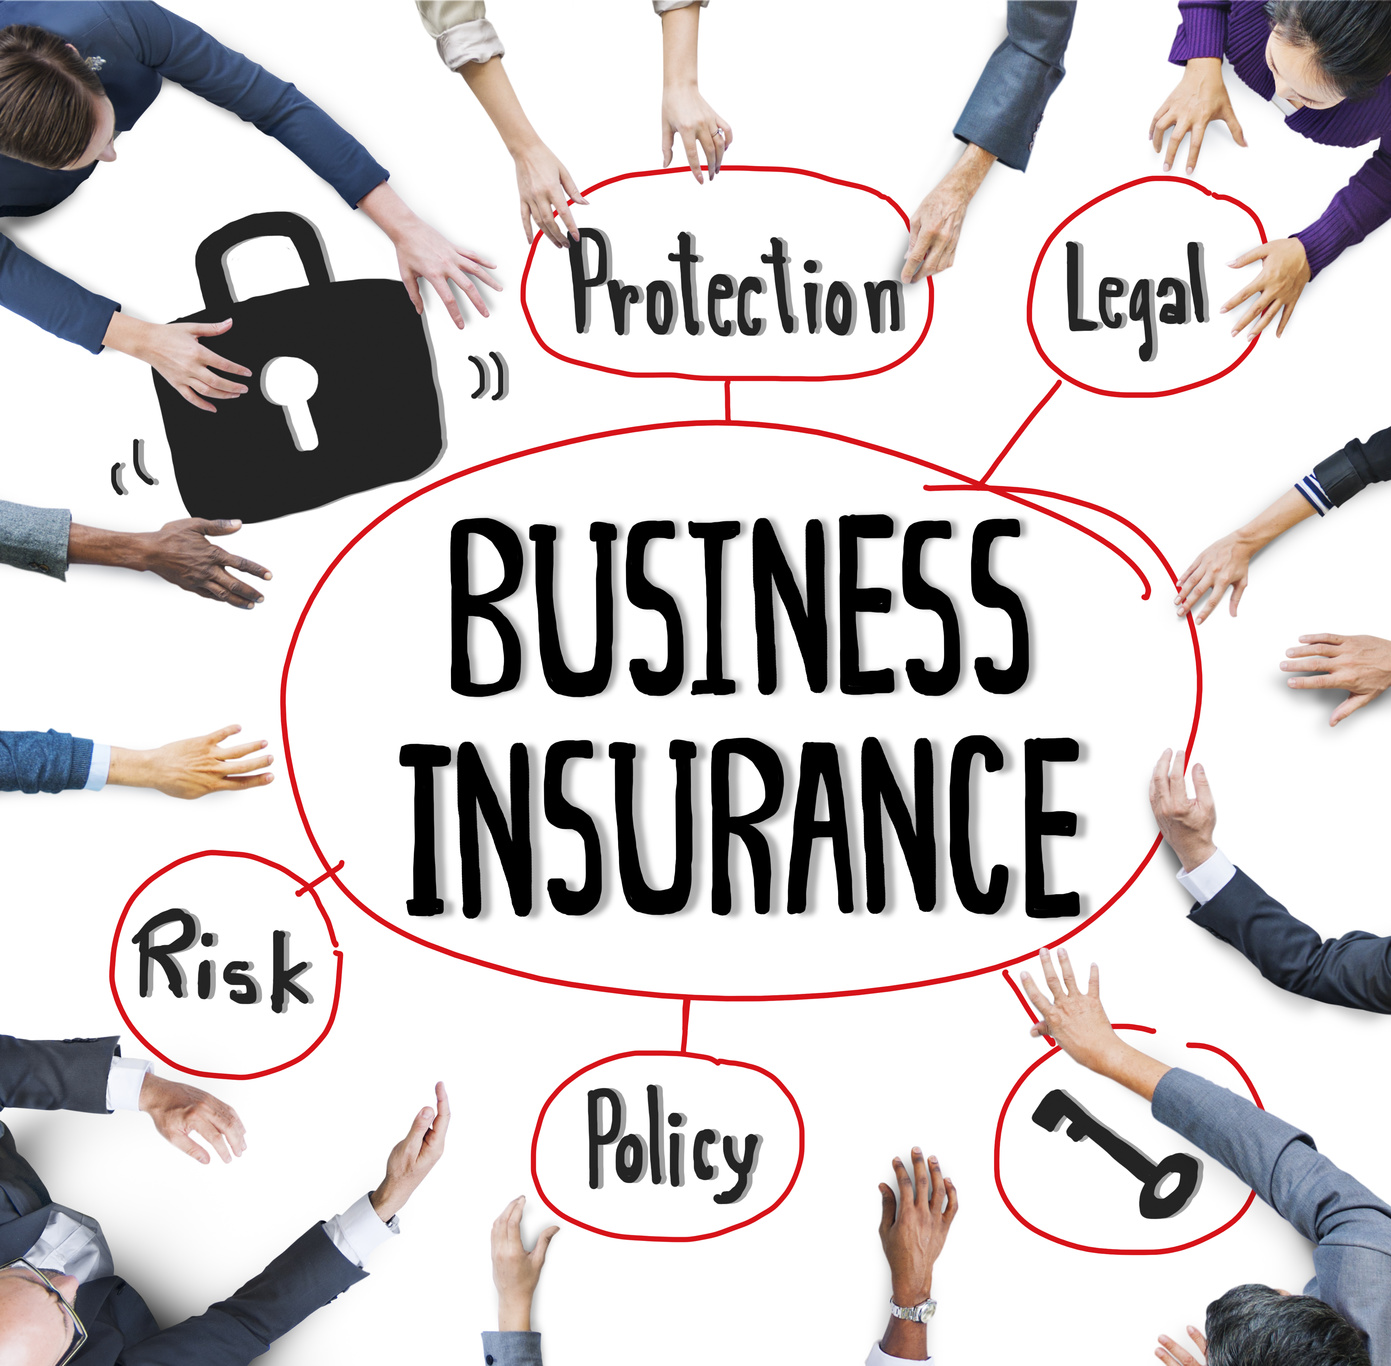 What type of insurance does your business need?